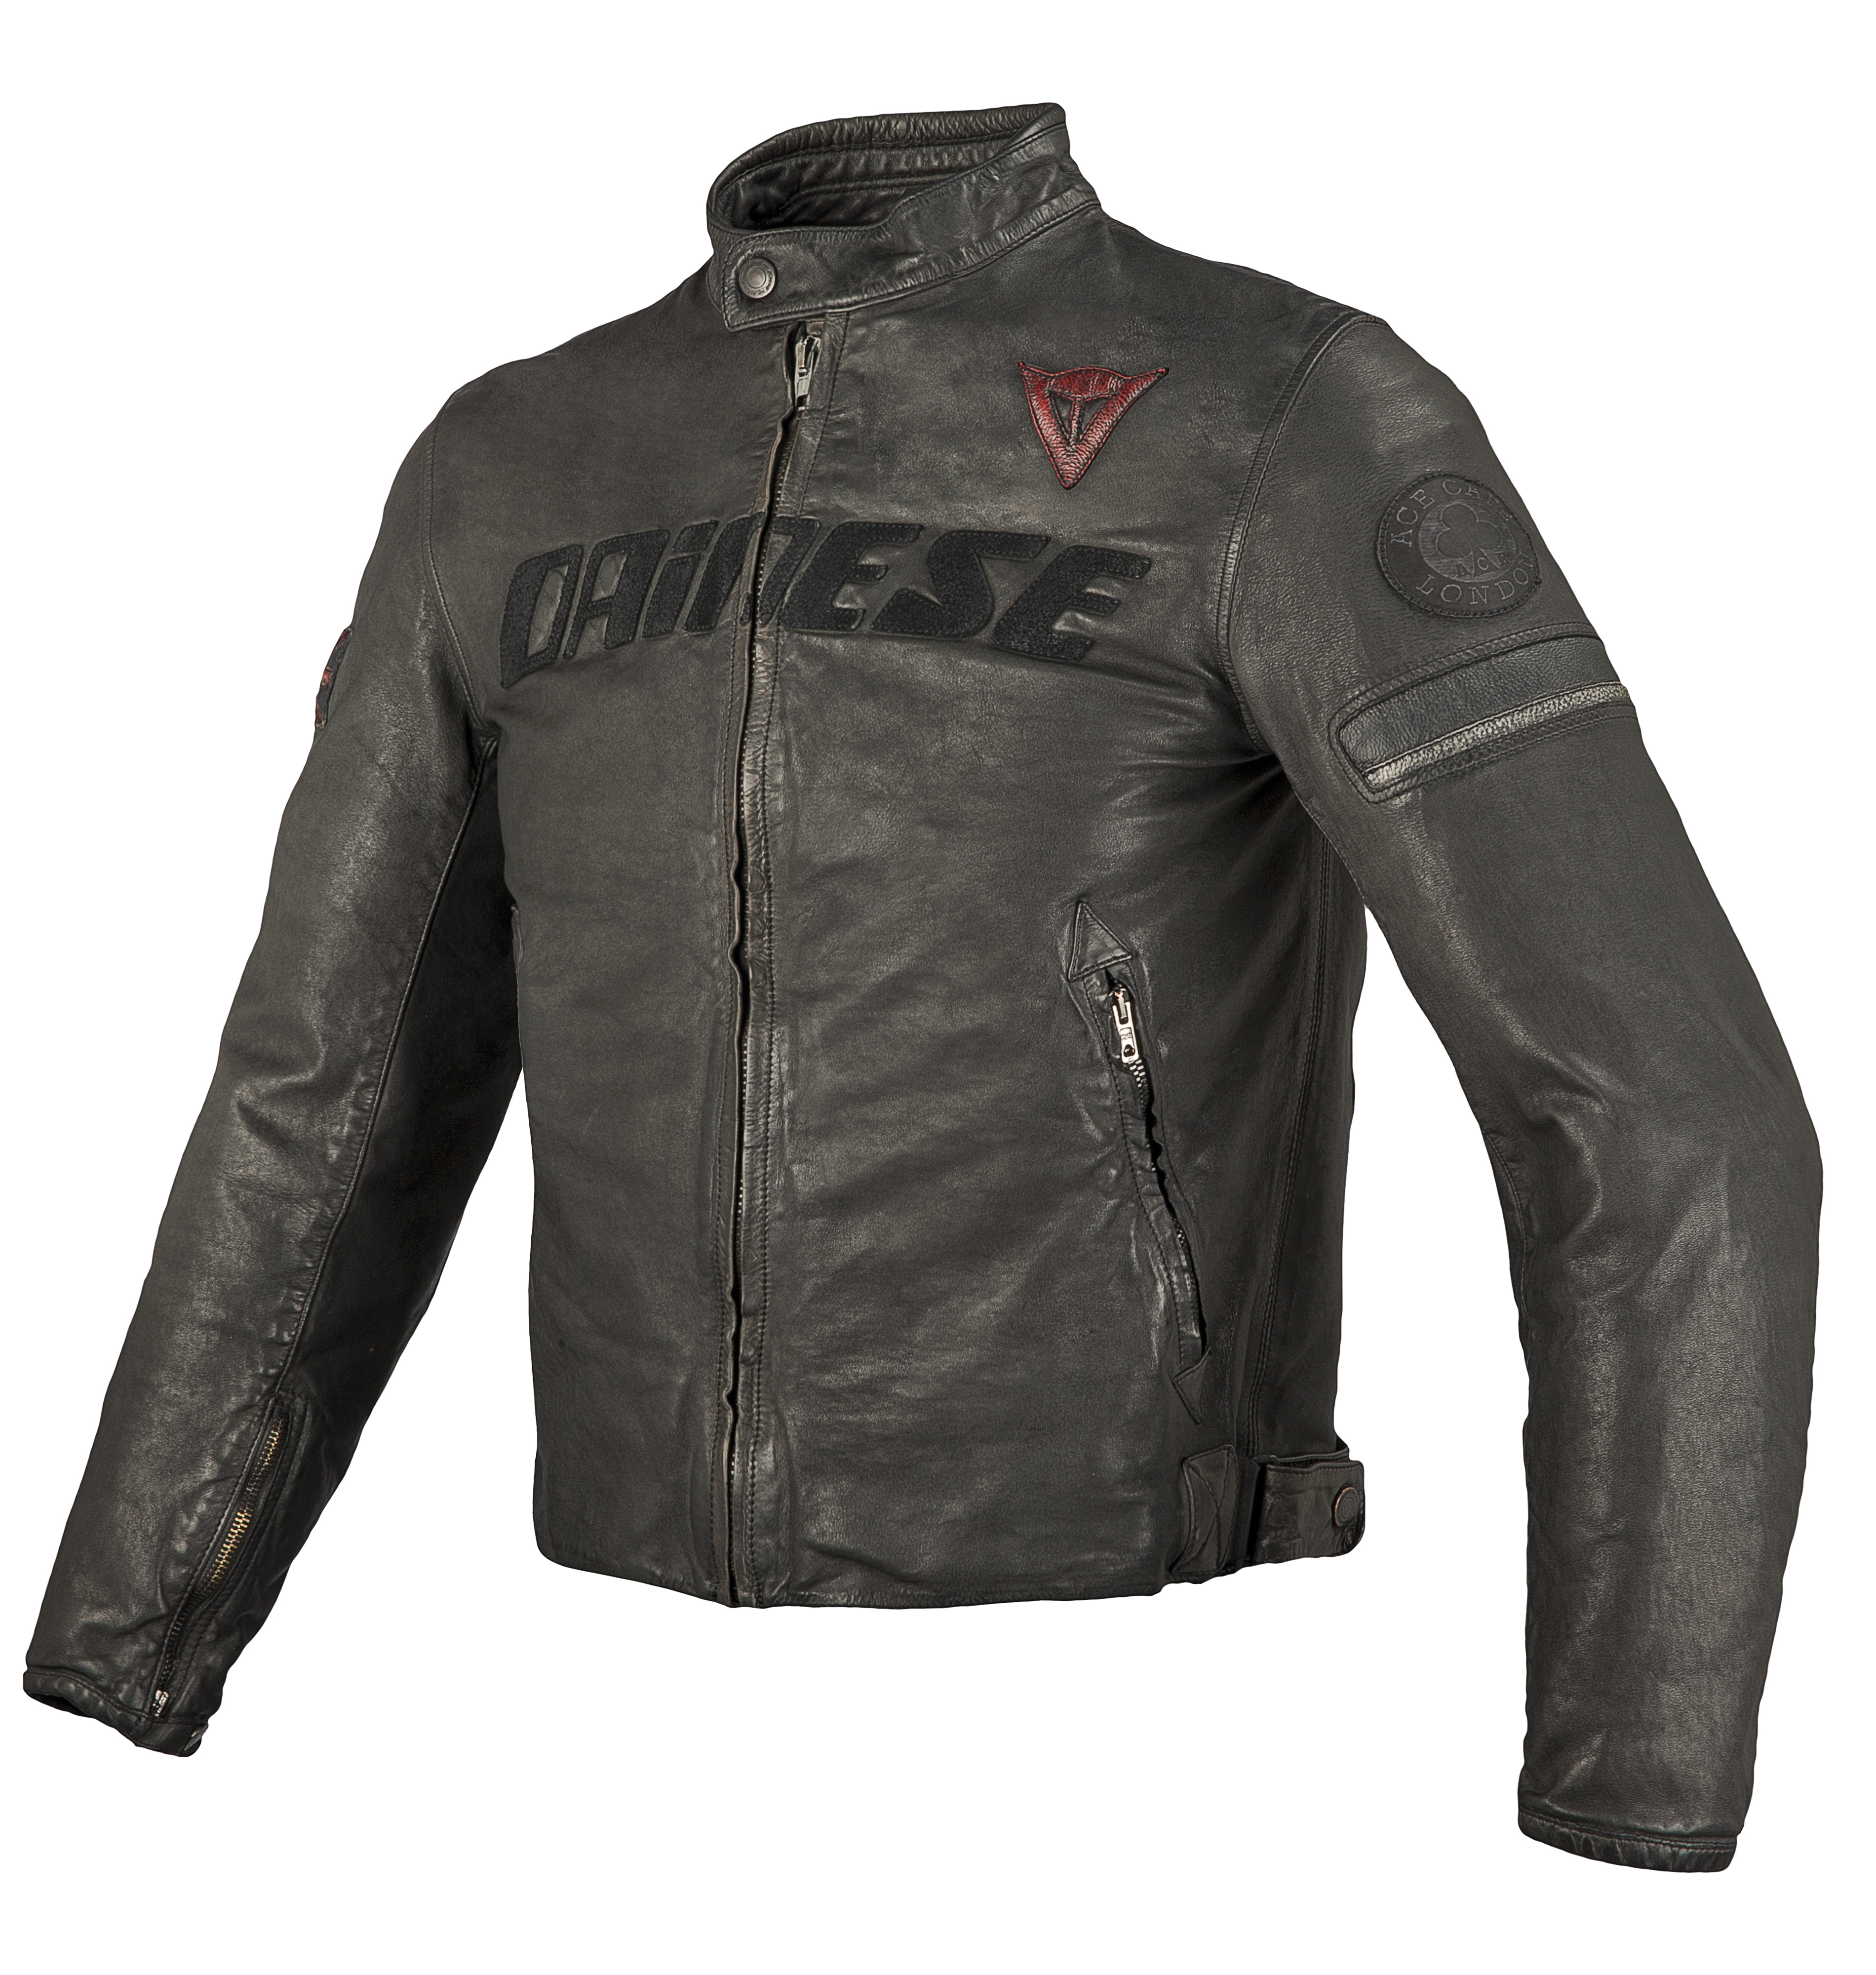 New Dainese Leather Jacket 2014 Collection Visordown